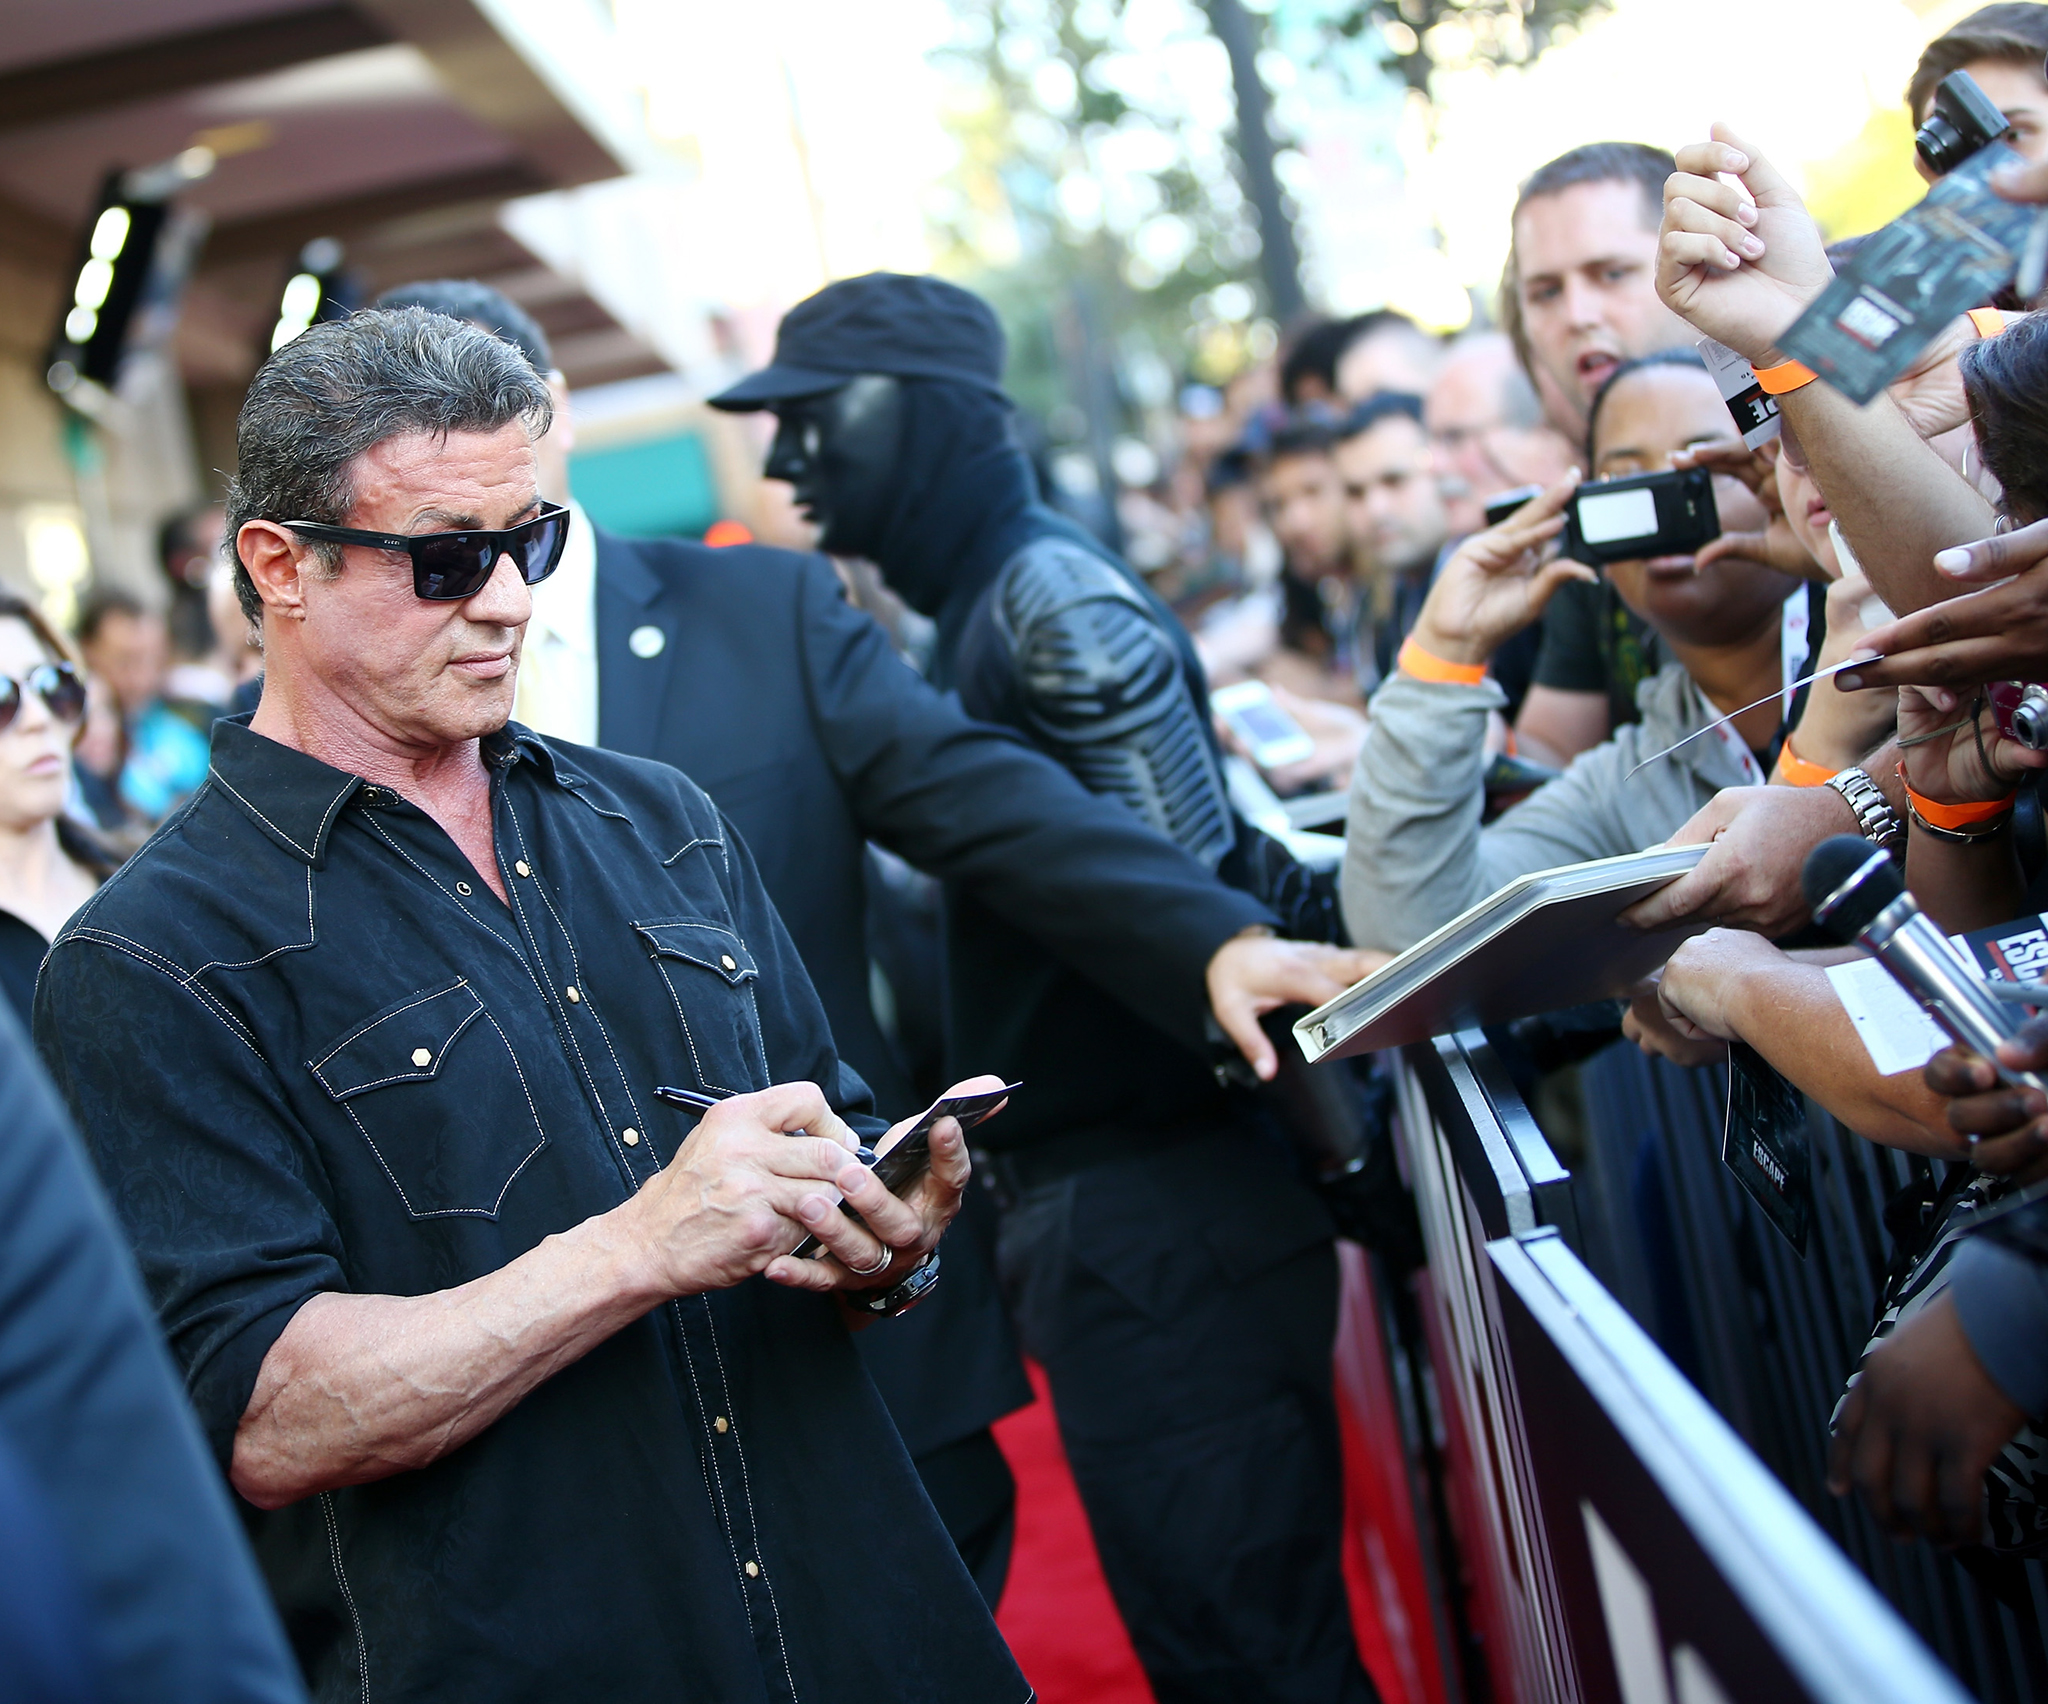 Sylvester Stallone charges for photos with fans. (Getty Images)